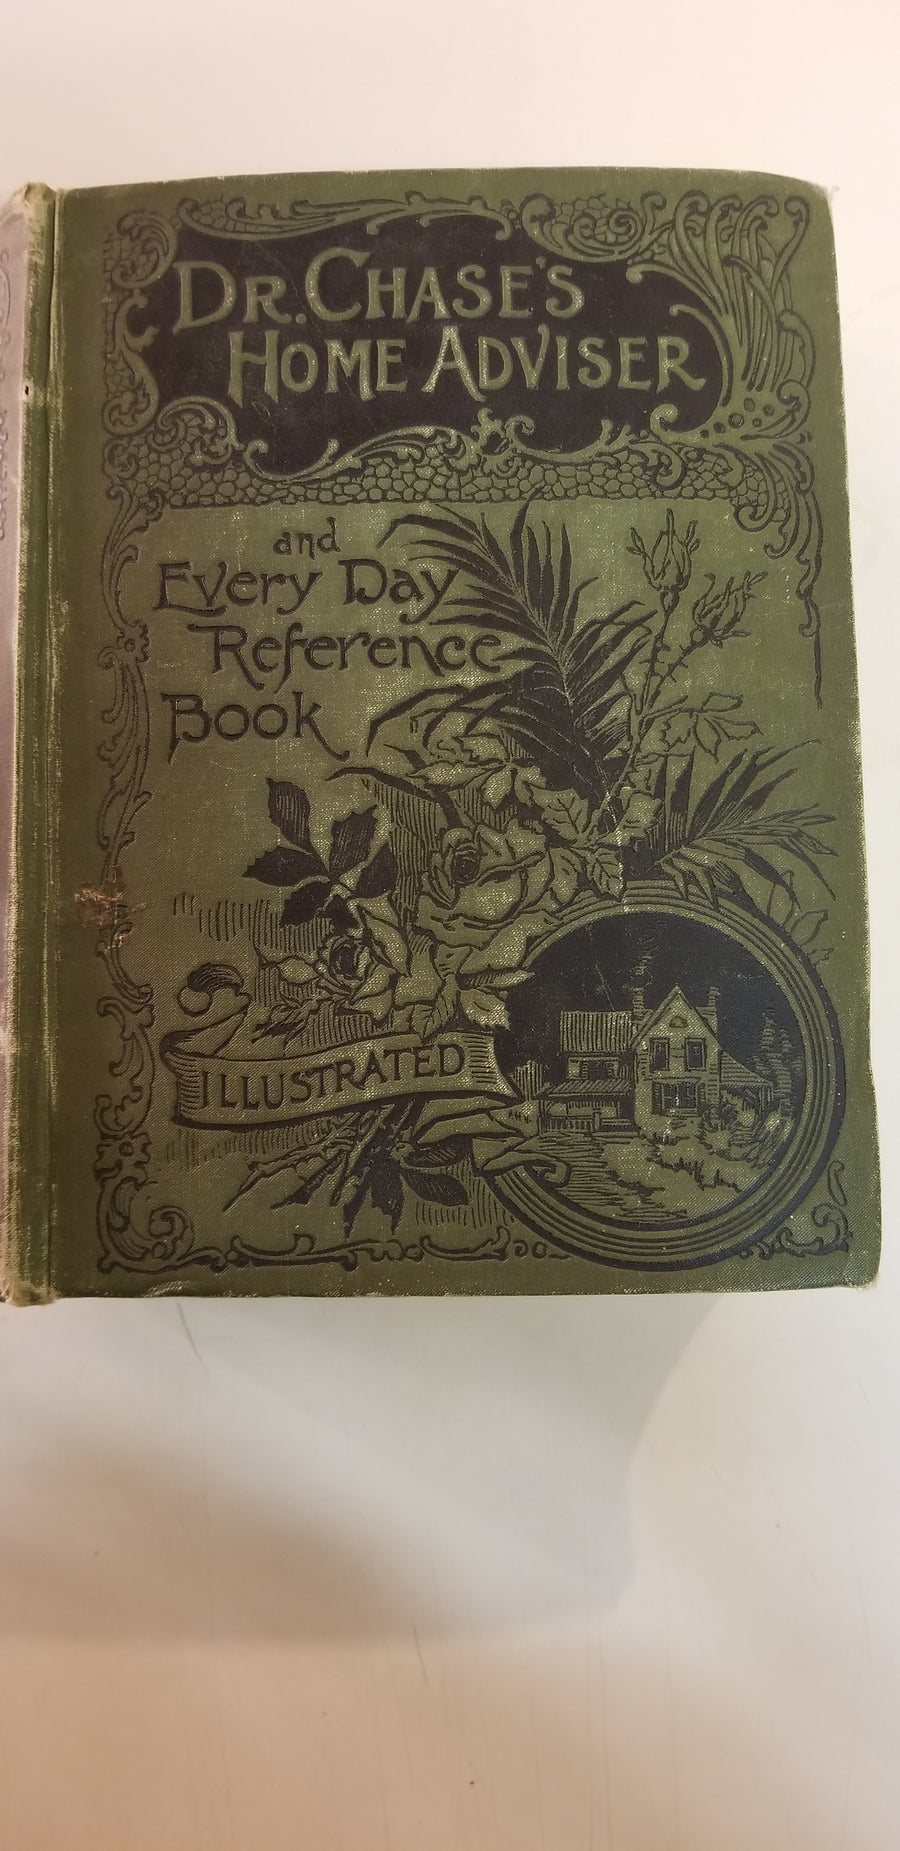 Doctor Chase's home advisor and everyday reference book, 1894 detroit, mi.